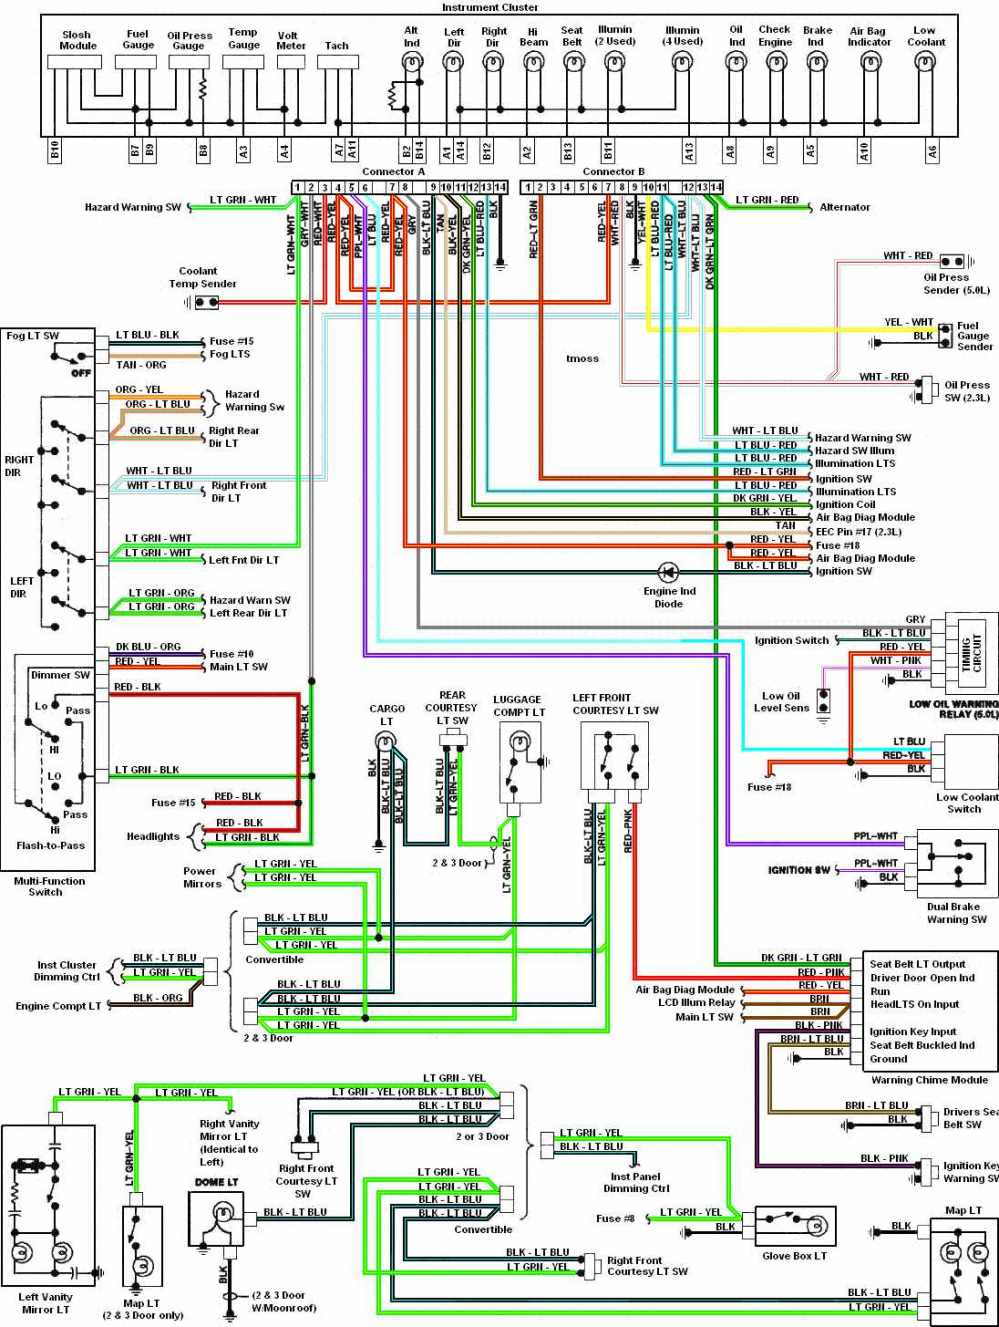 medium resolution of car stereo wiring diagram for 2001 suzuki esteem wiring library 1986 mustang dash wiring diagram wiring